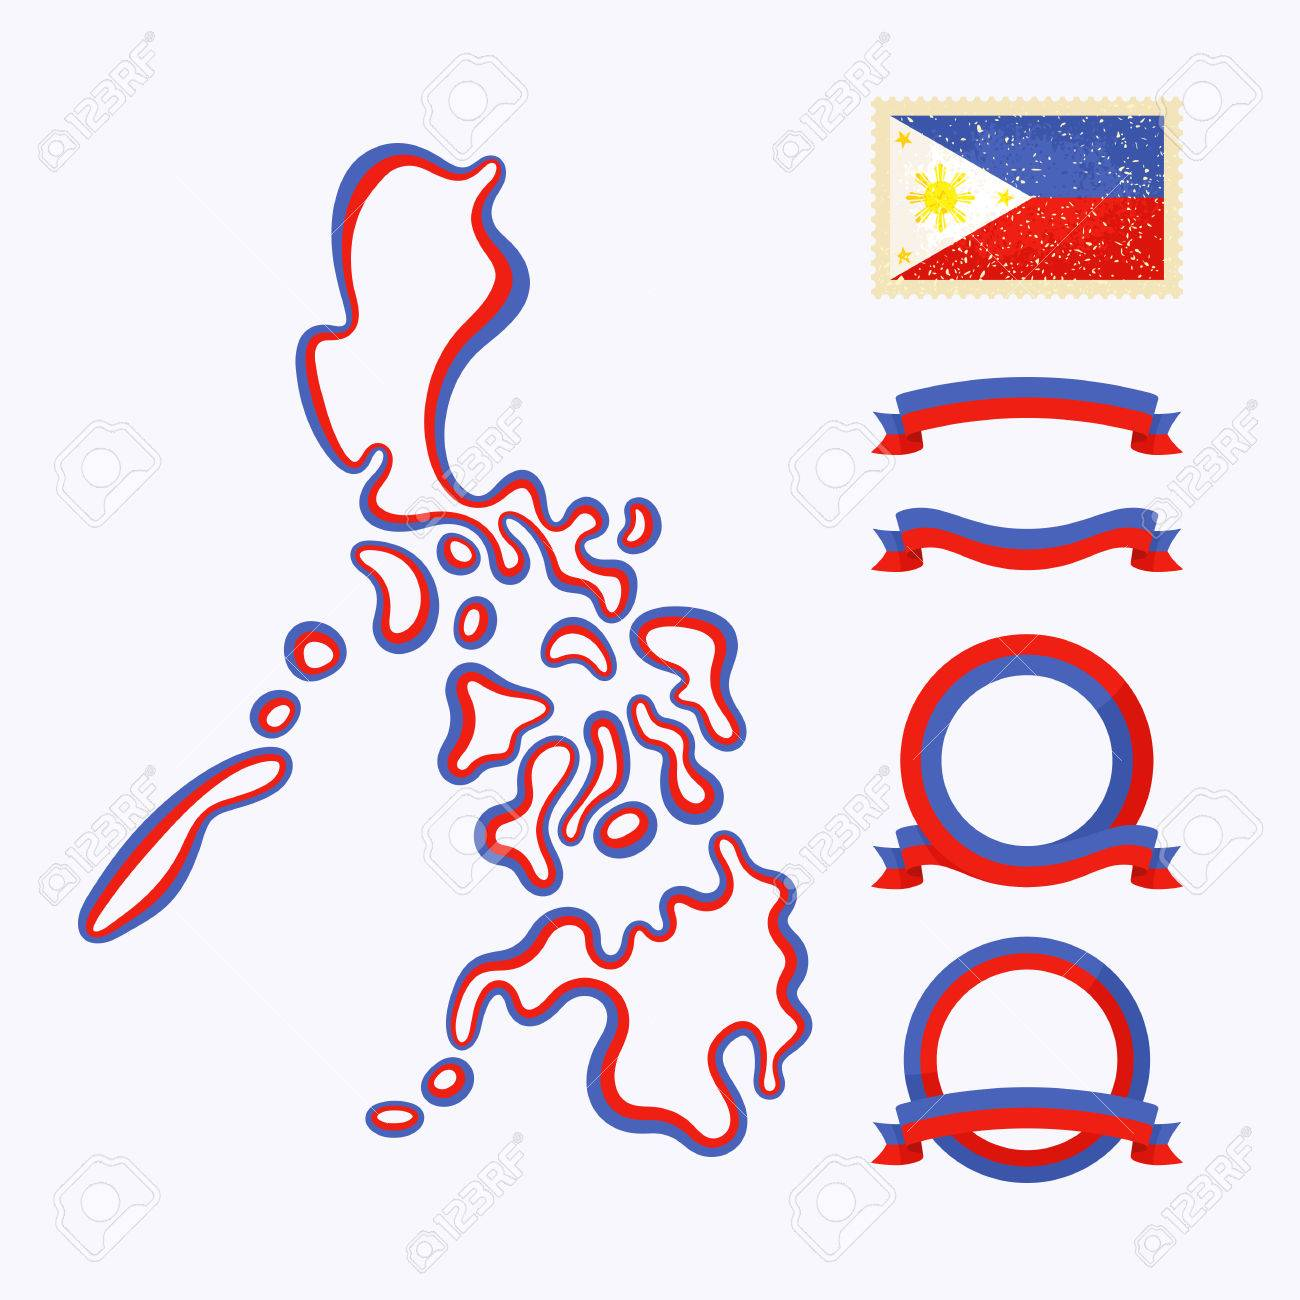 Outline Map Of Philippines Border Is Marked With Ribbon In National - Package of map colors